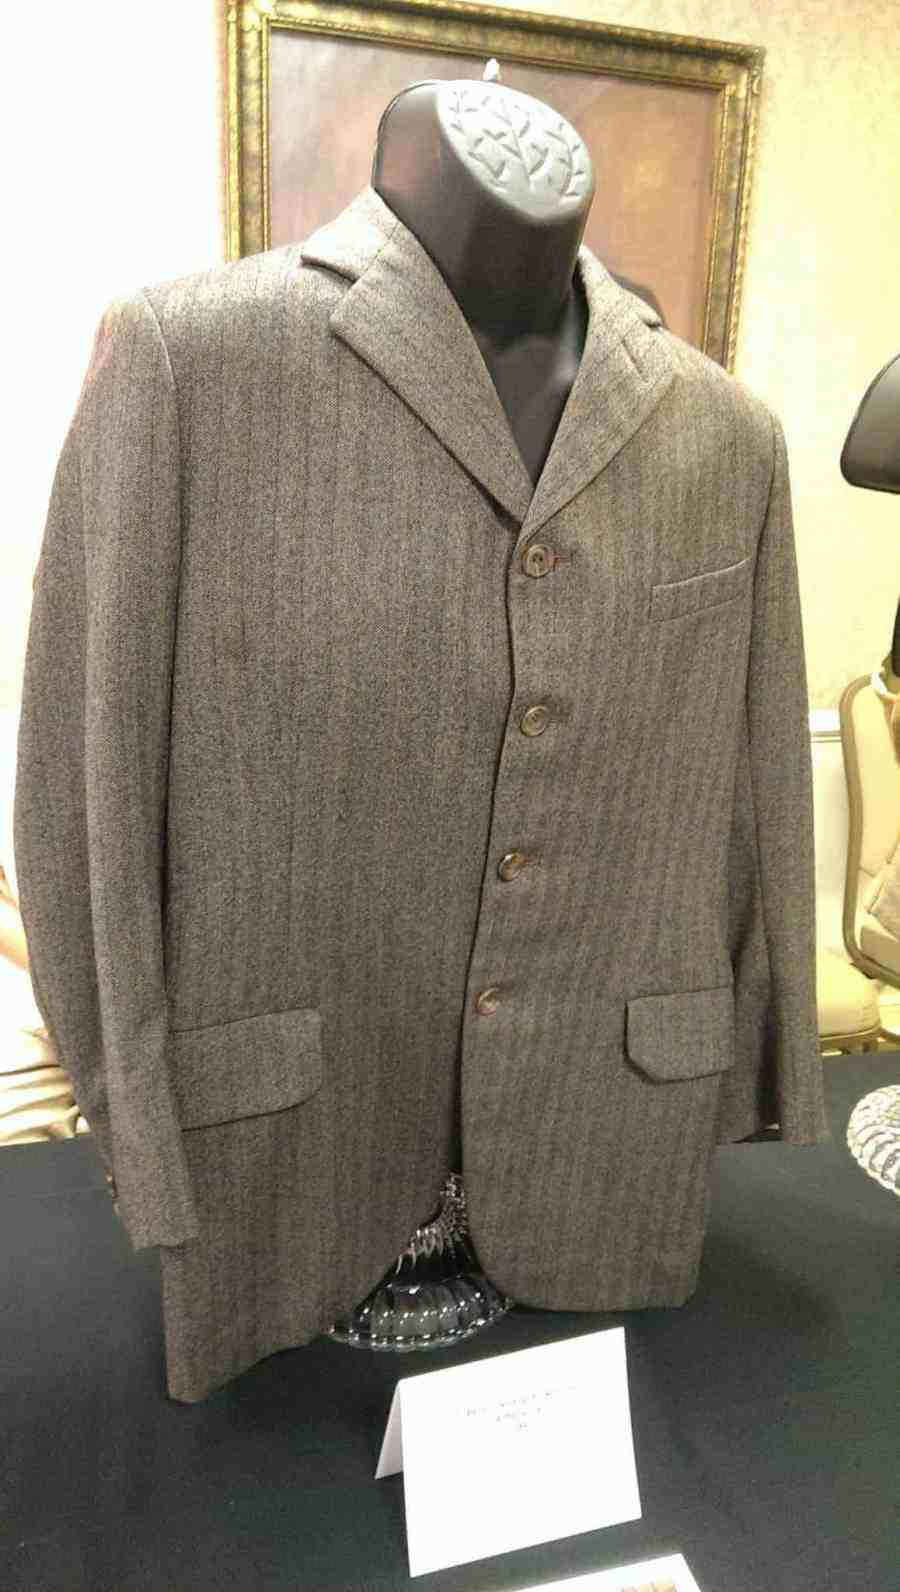 Dr. Watson's jacket from WITHOUT A CLUE (1988). Grey herringbone wool jacket.